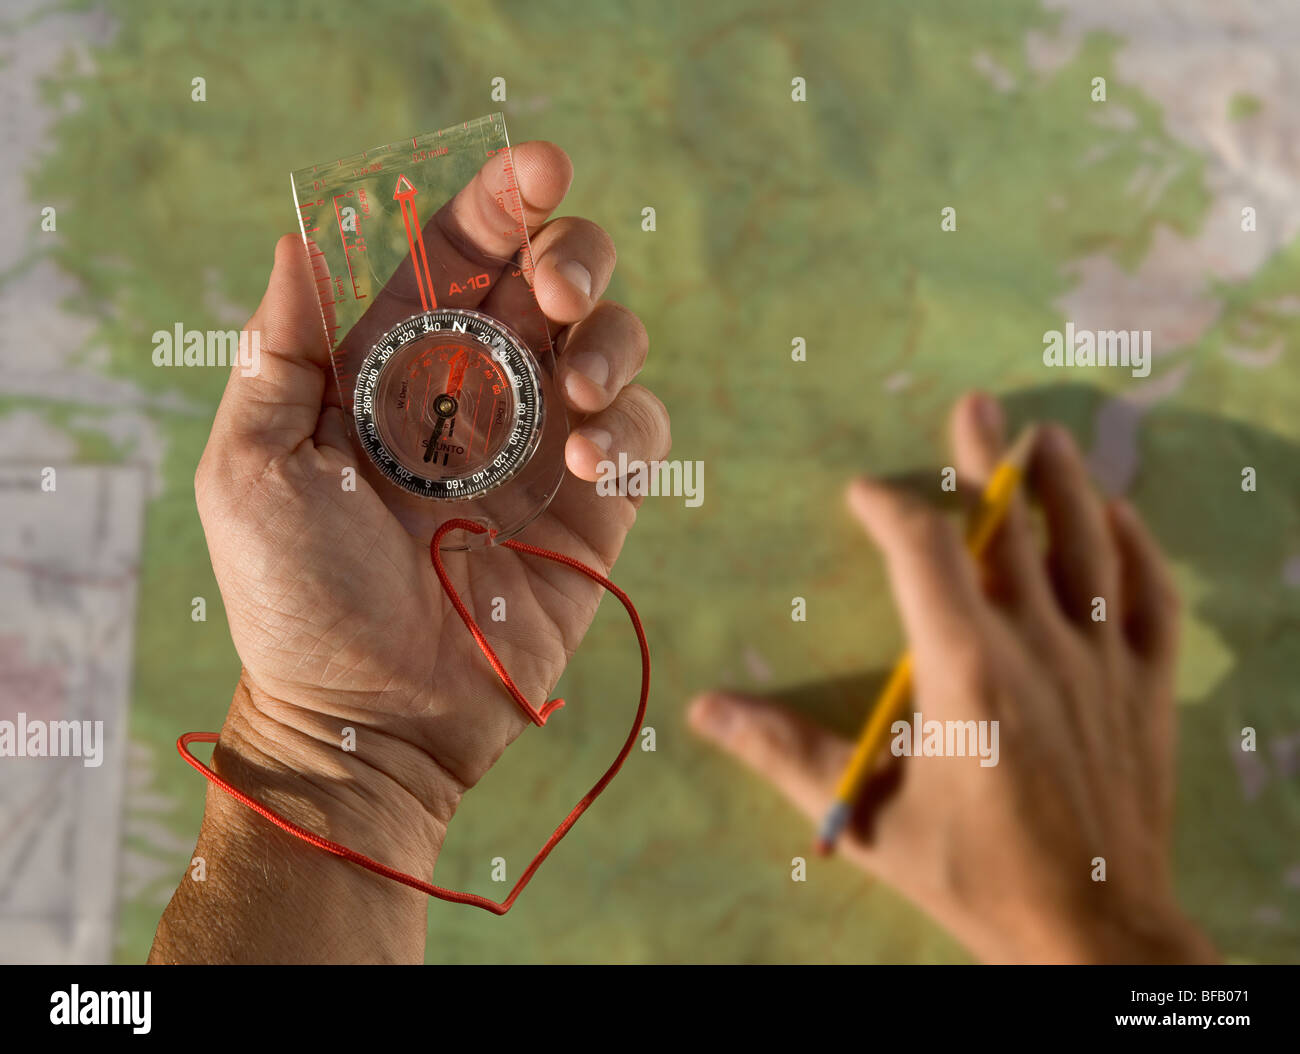 A person using a compass and topo map while out hiking. - Stock Image